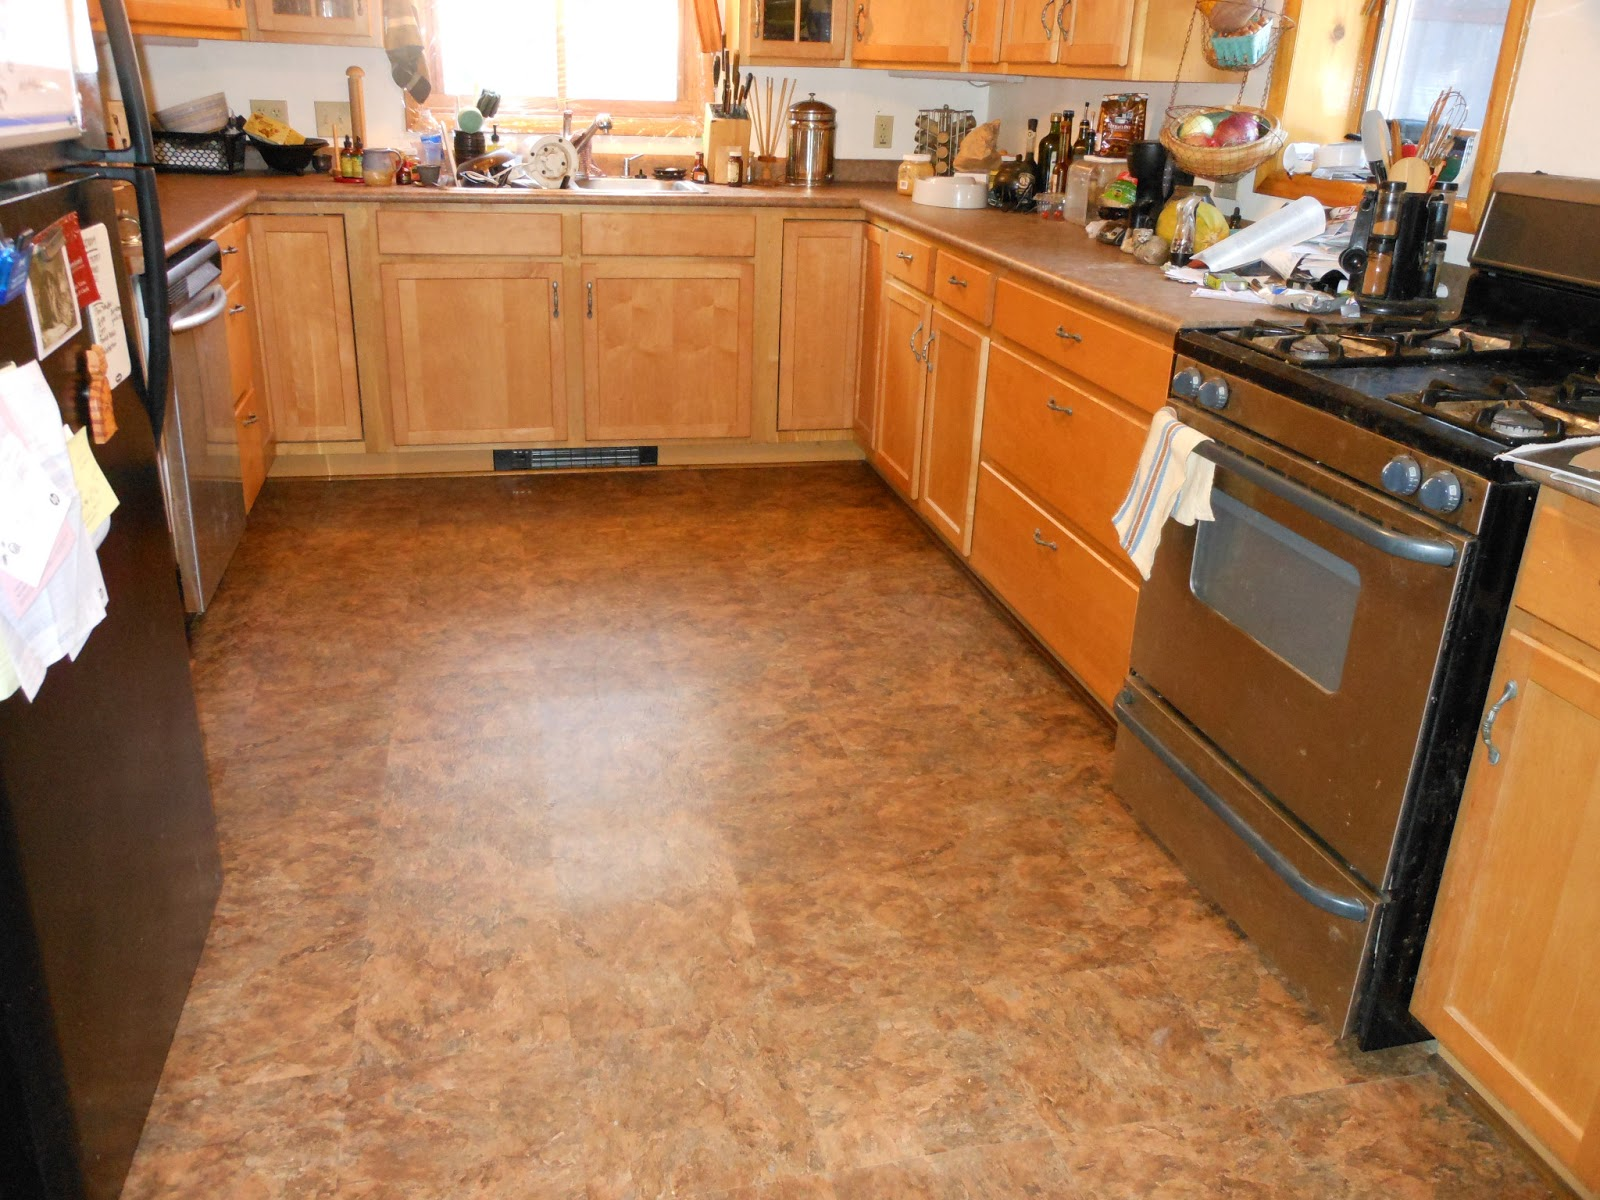 the best nonslip tile types for kitchen floor tile - midcityeast